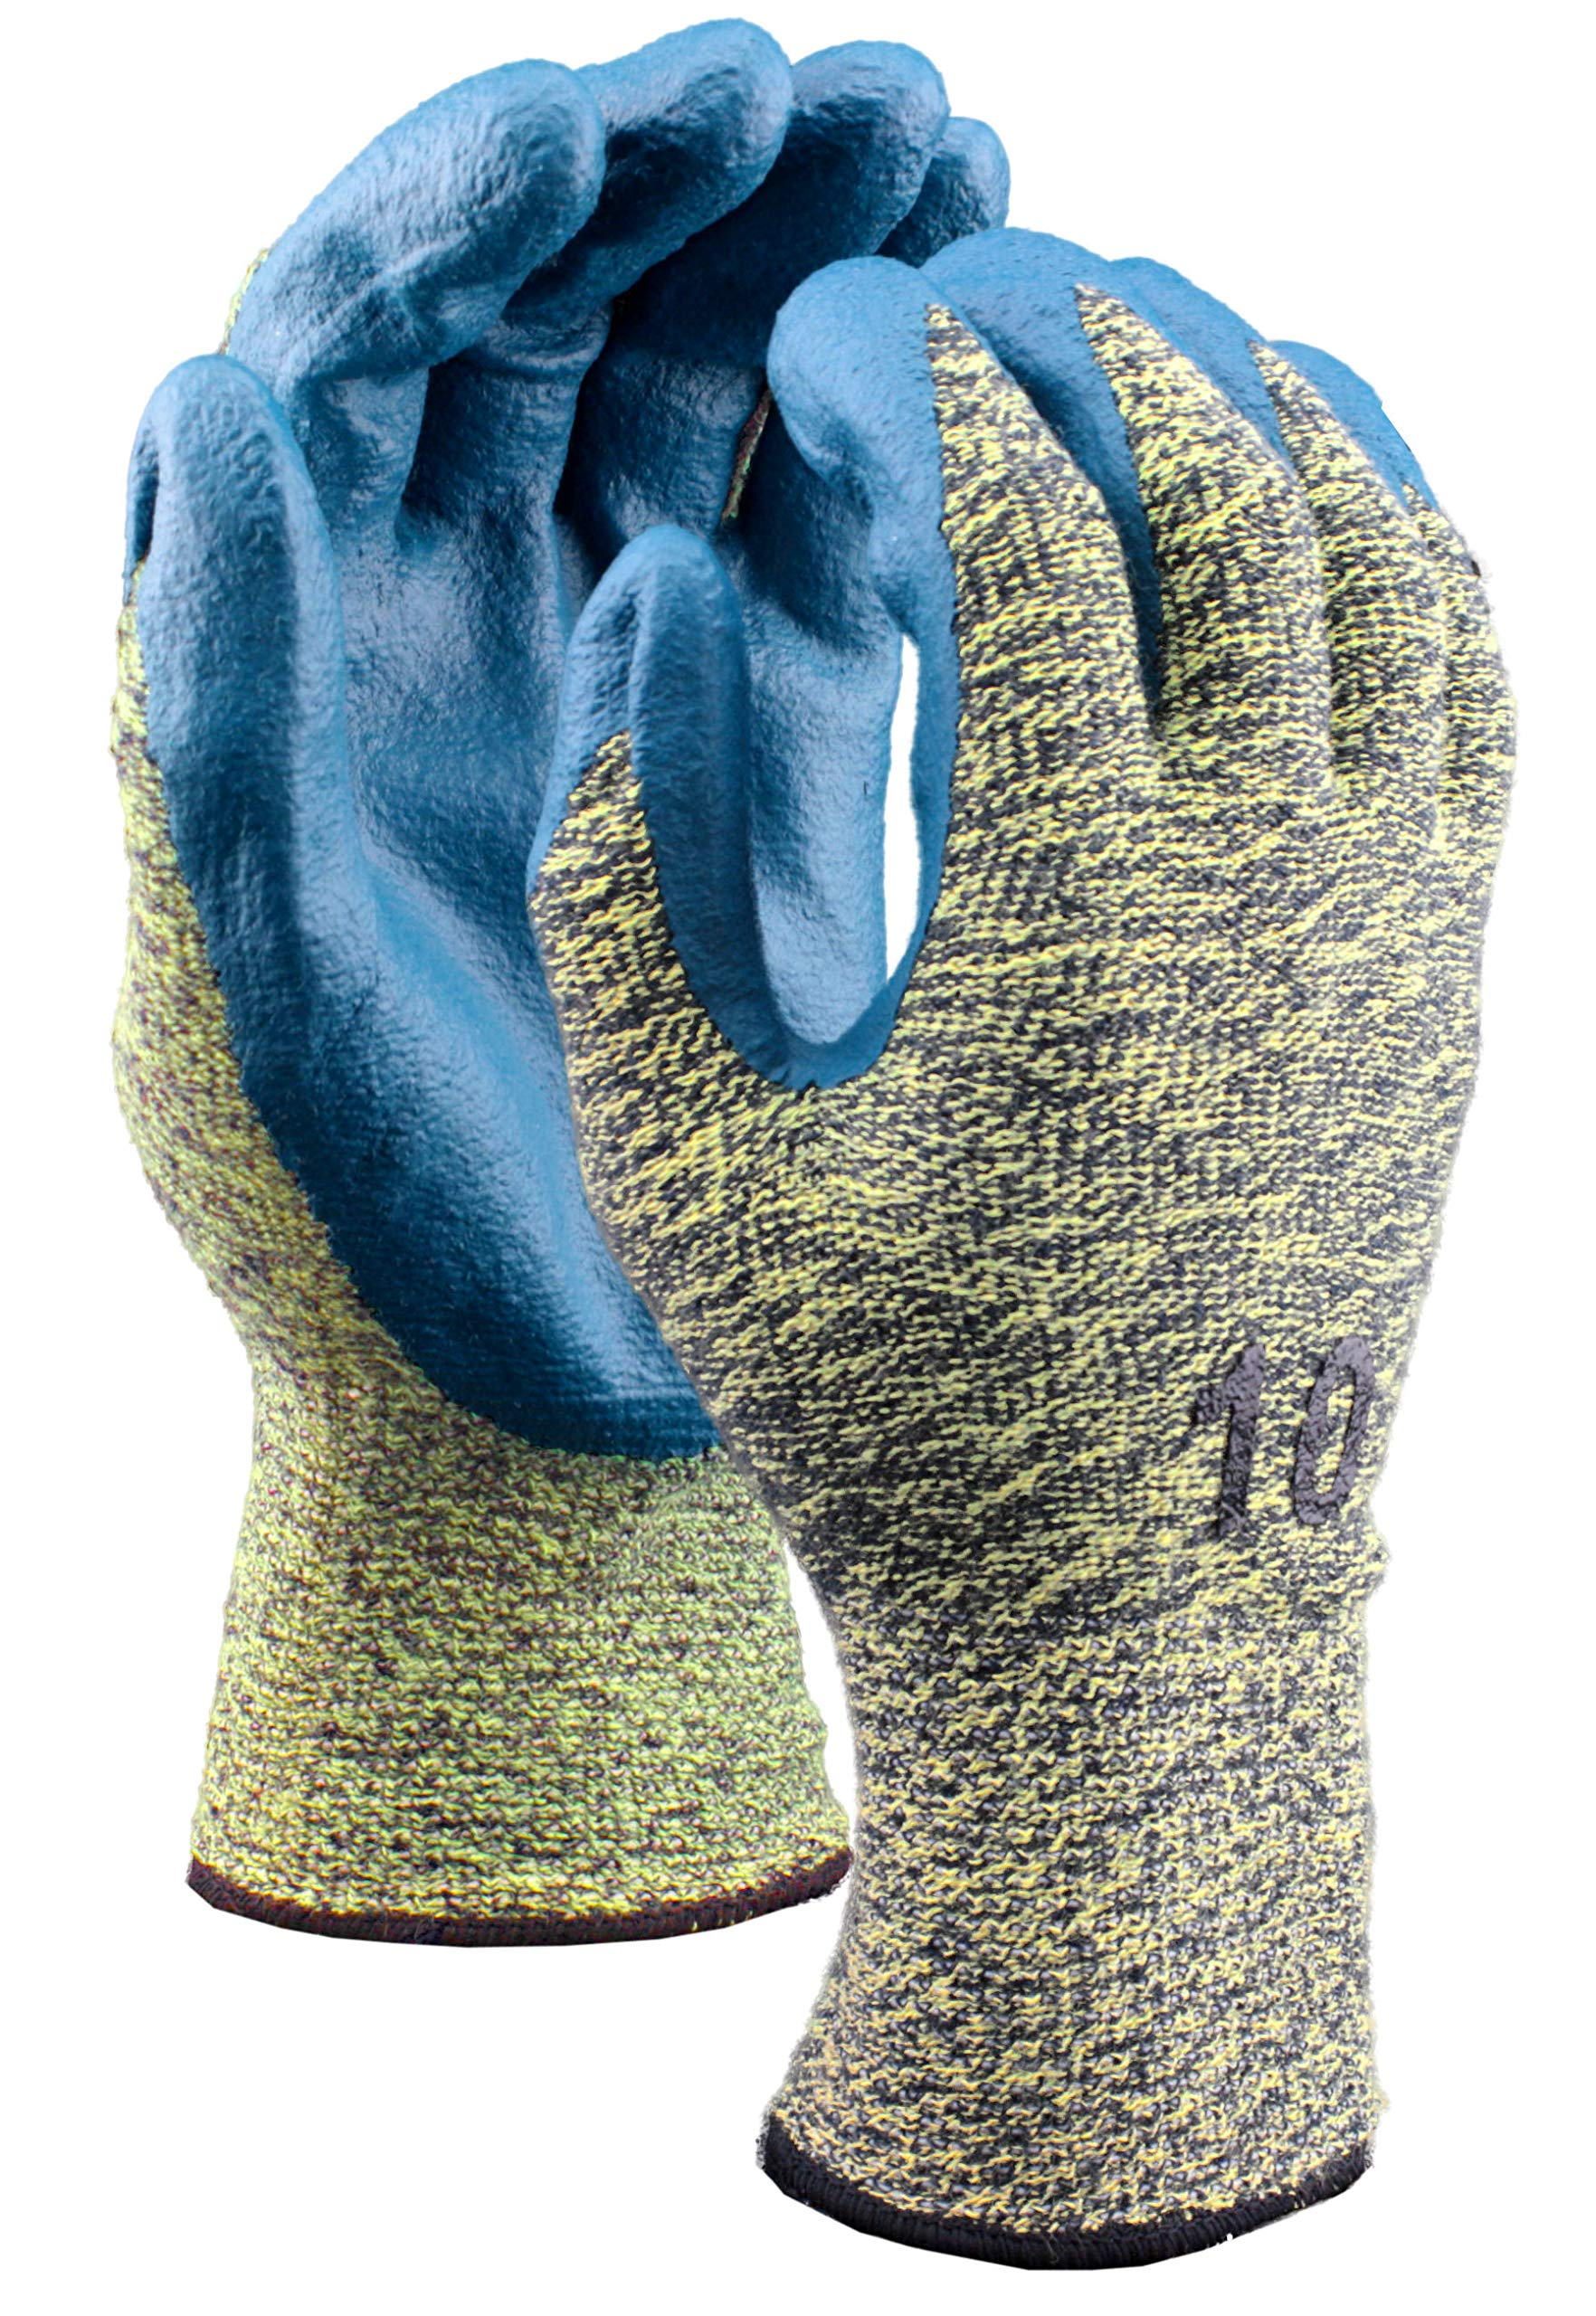 Stauffer Cut Resistant Glove with Nitrile Foam Coating, Cut Level A4, Extra Small, (Pack of 12) by Stauffer Glove & Safety (Image #1)